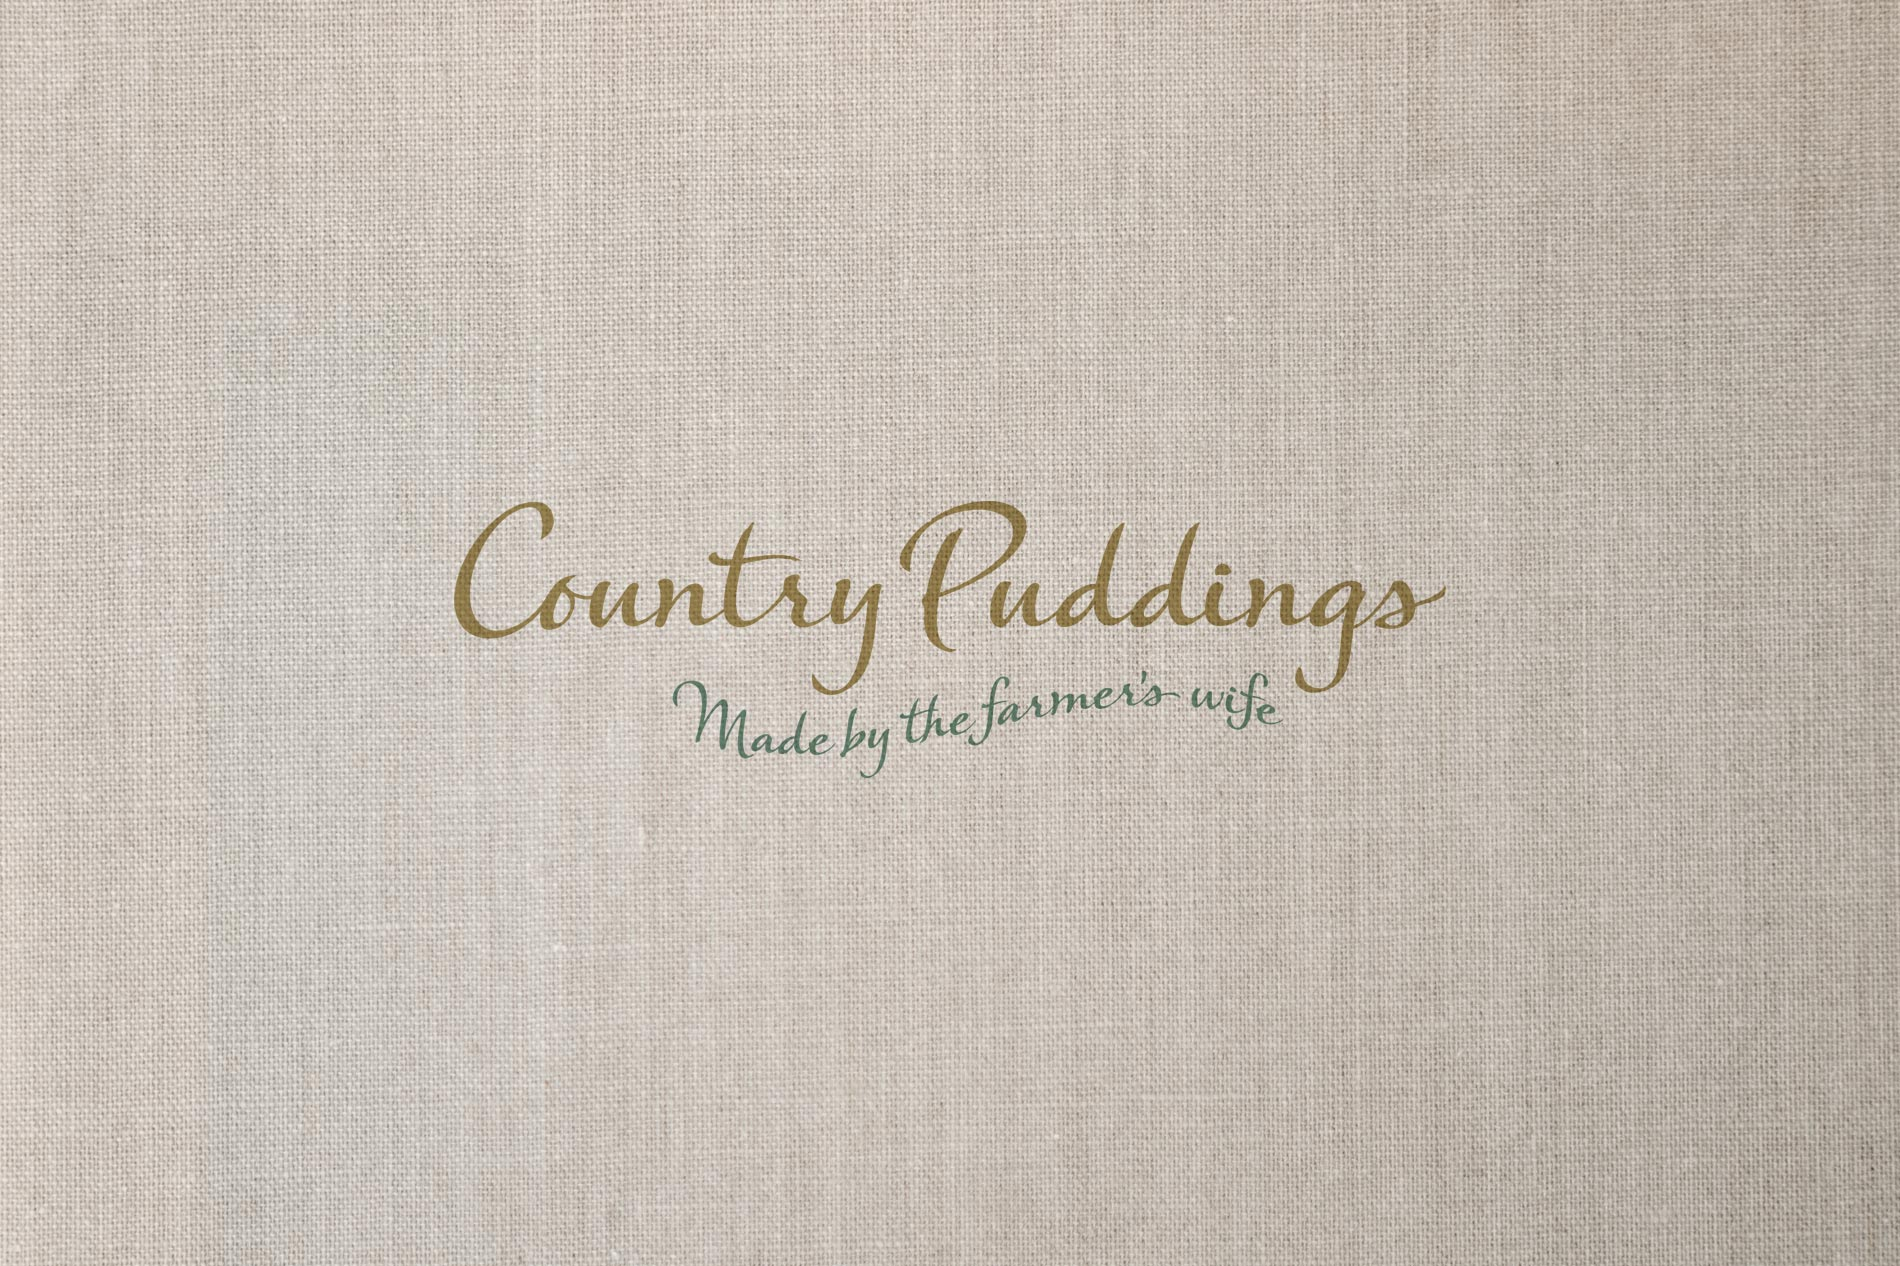 Country Puddings Logo, branding and packaging design